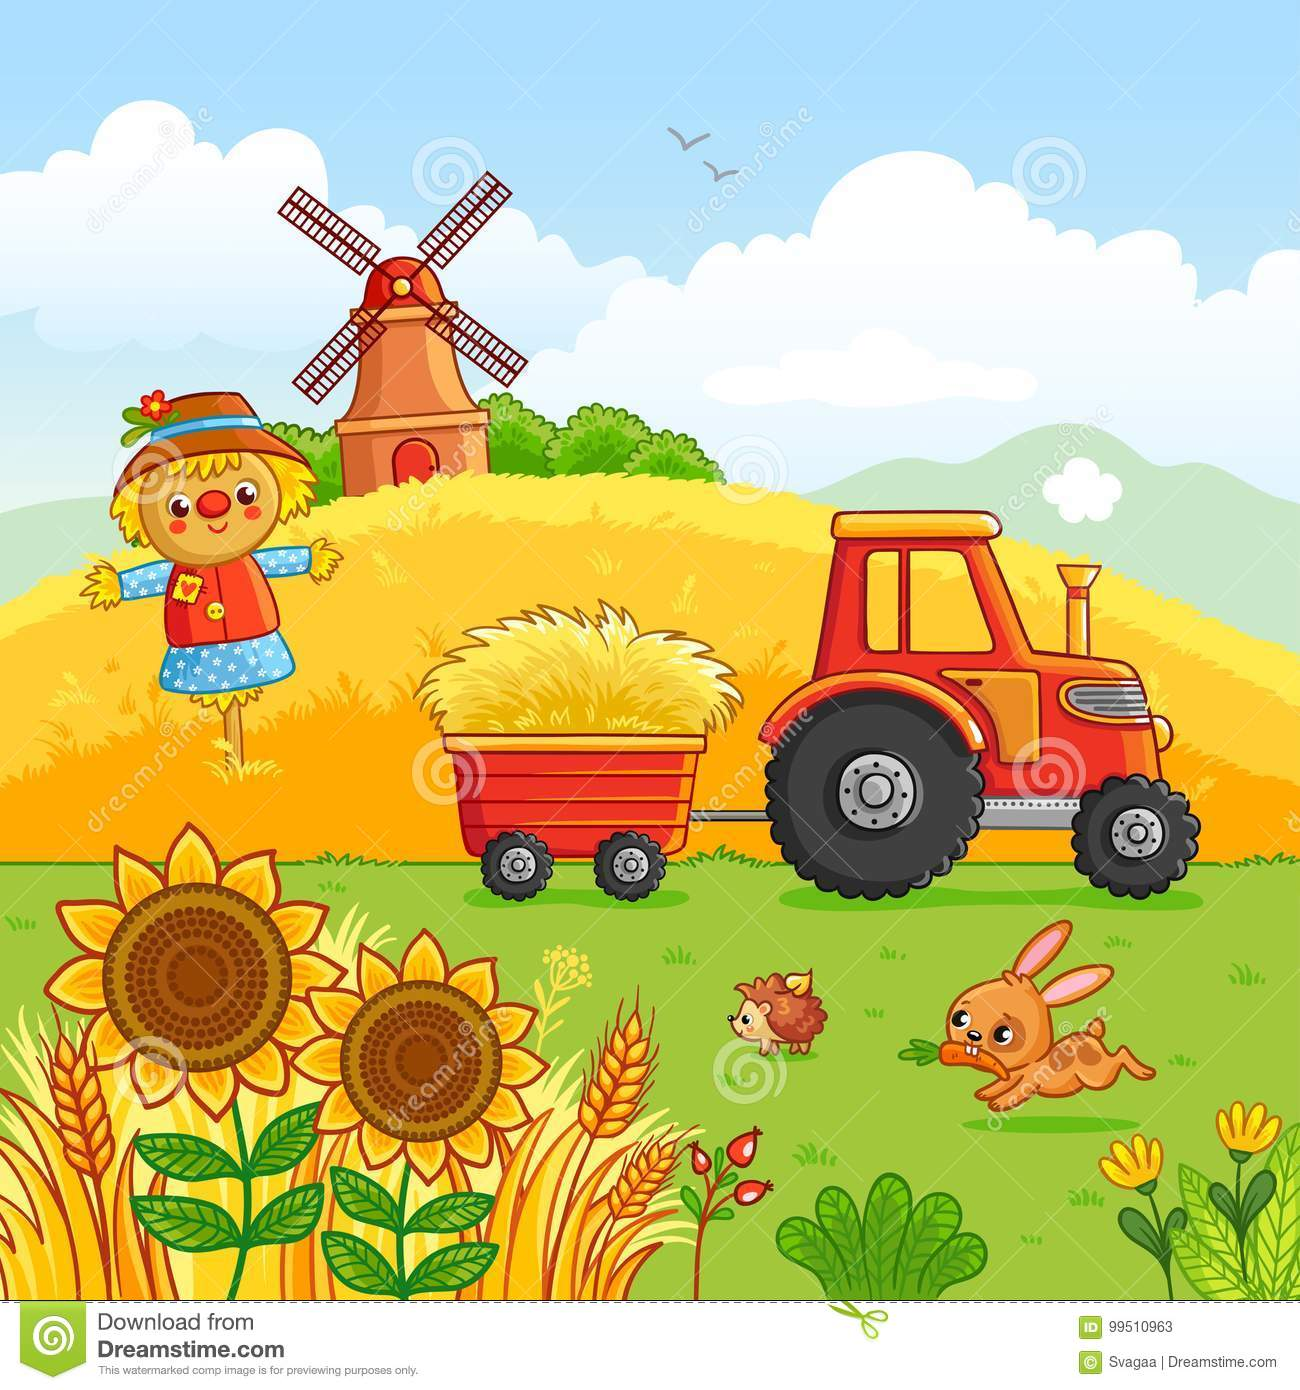 Hay Farmer Tractor Cartoon : Tractor cartoons illustrations vector stock images